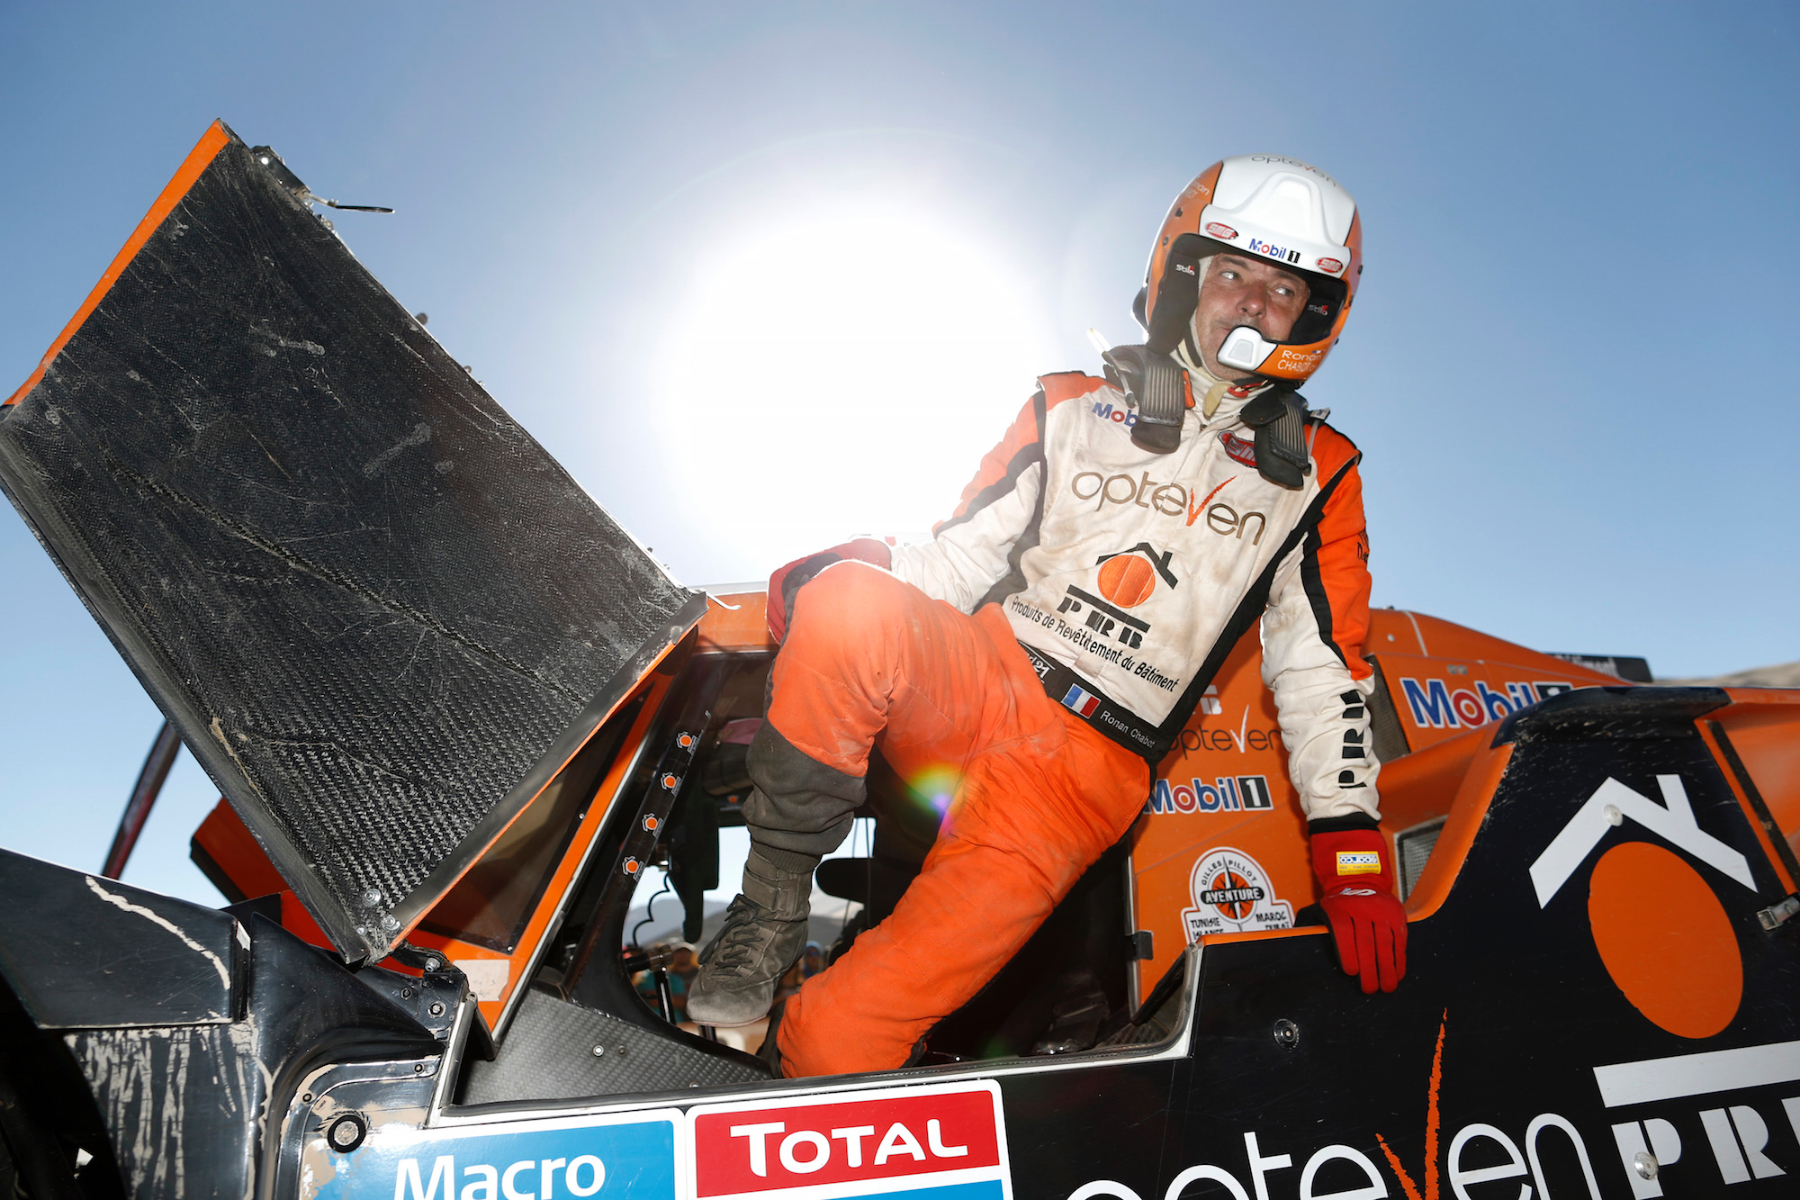 CHABOT Ronan (Fra) Smg ambiance during the Dakar 2015 Argentina Bolivia Chile, Stage 4 / Etape 4 -  Chilecito to Copiapo on January 7th 2015 at Chilecito, Argentina. Photo Florent Gooden / DPPI